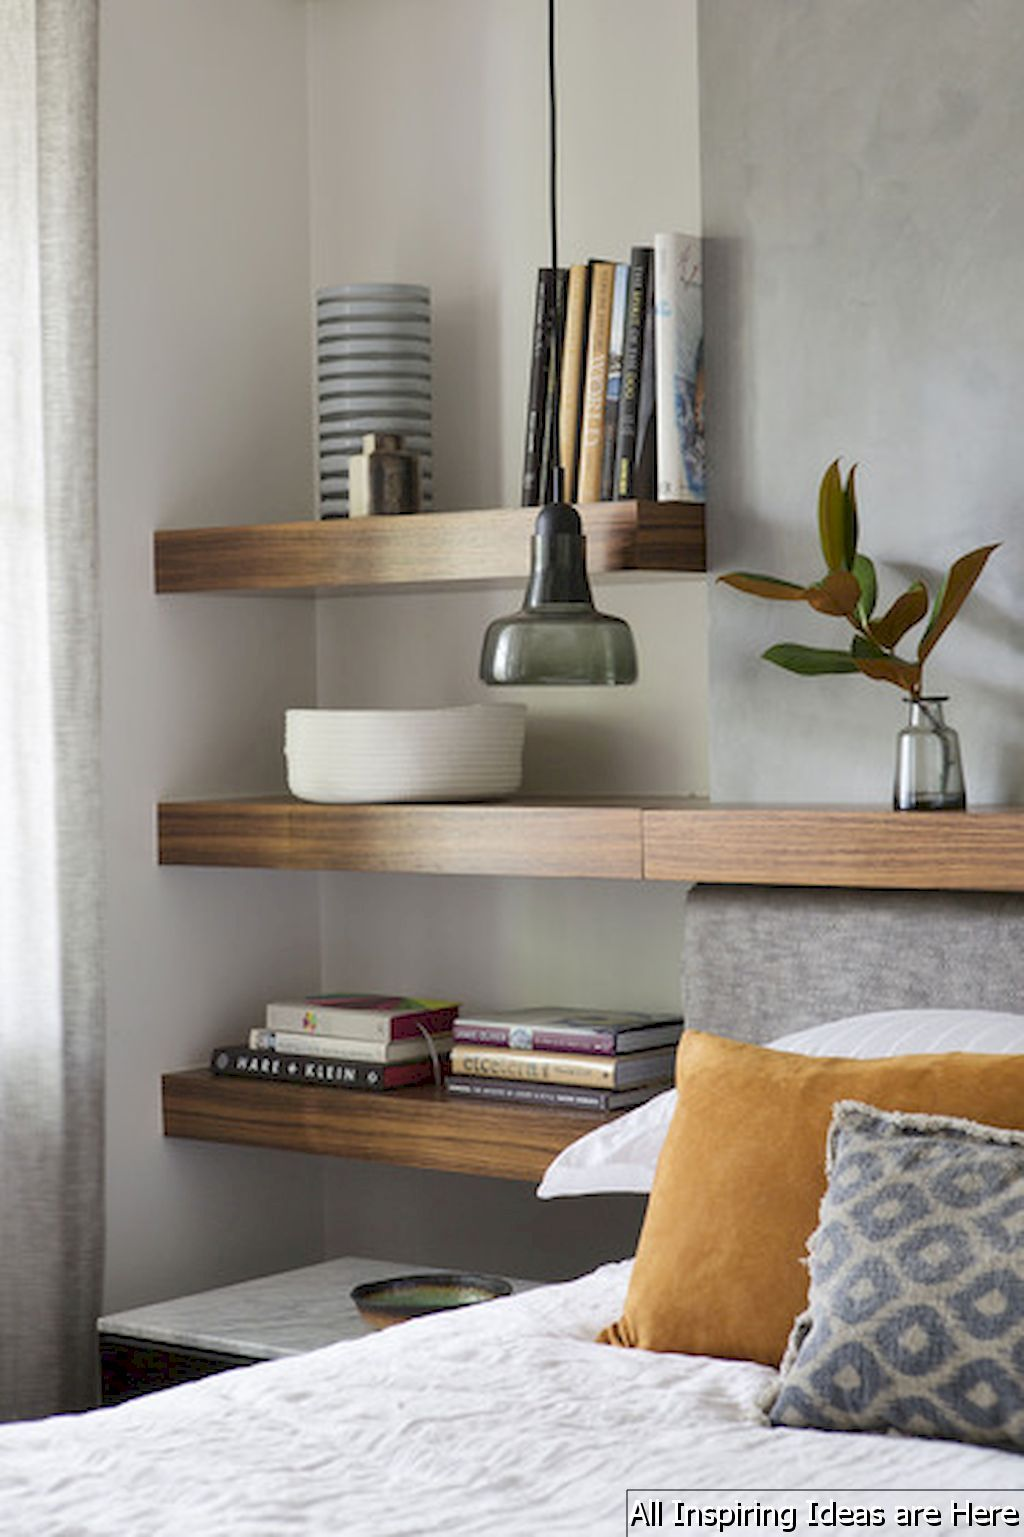 Gorgeous 65 Simple Bedroom Shelves Design Ideas Https Roomaholic Com 1036 65 Simple Bedroom Shelve Home Decor